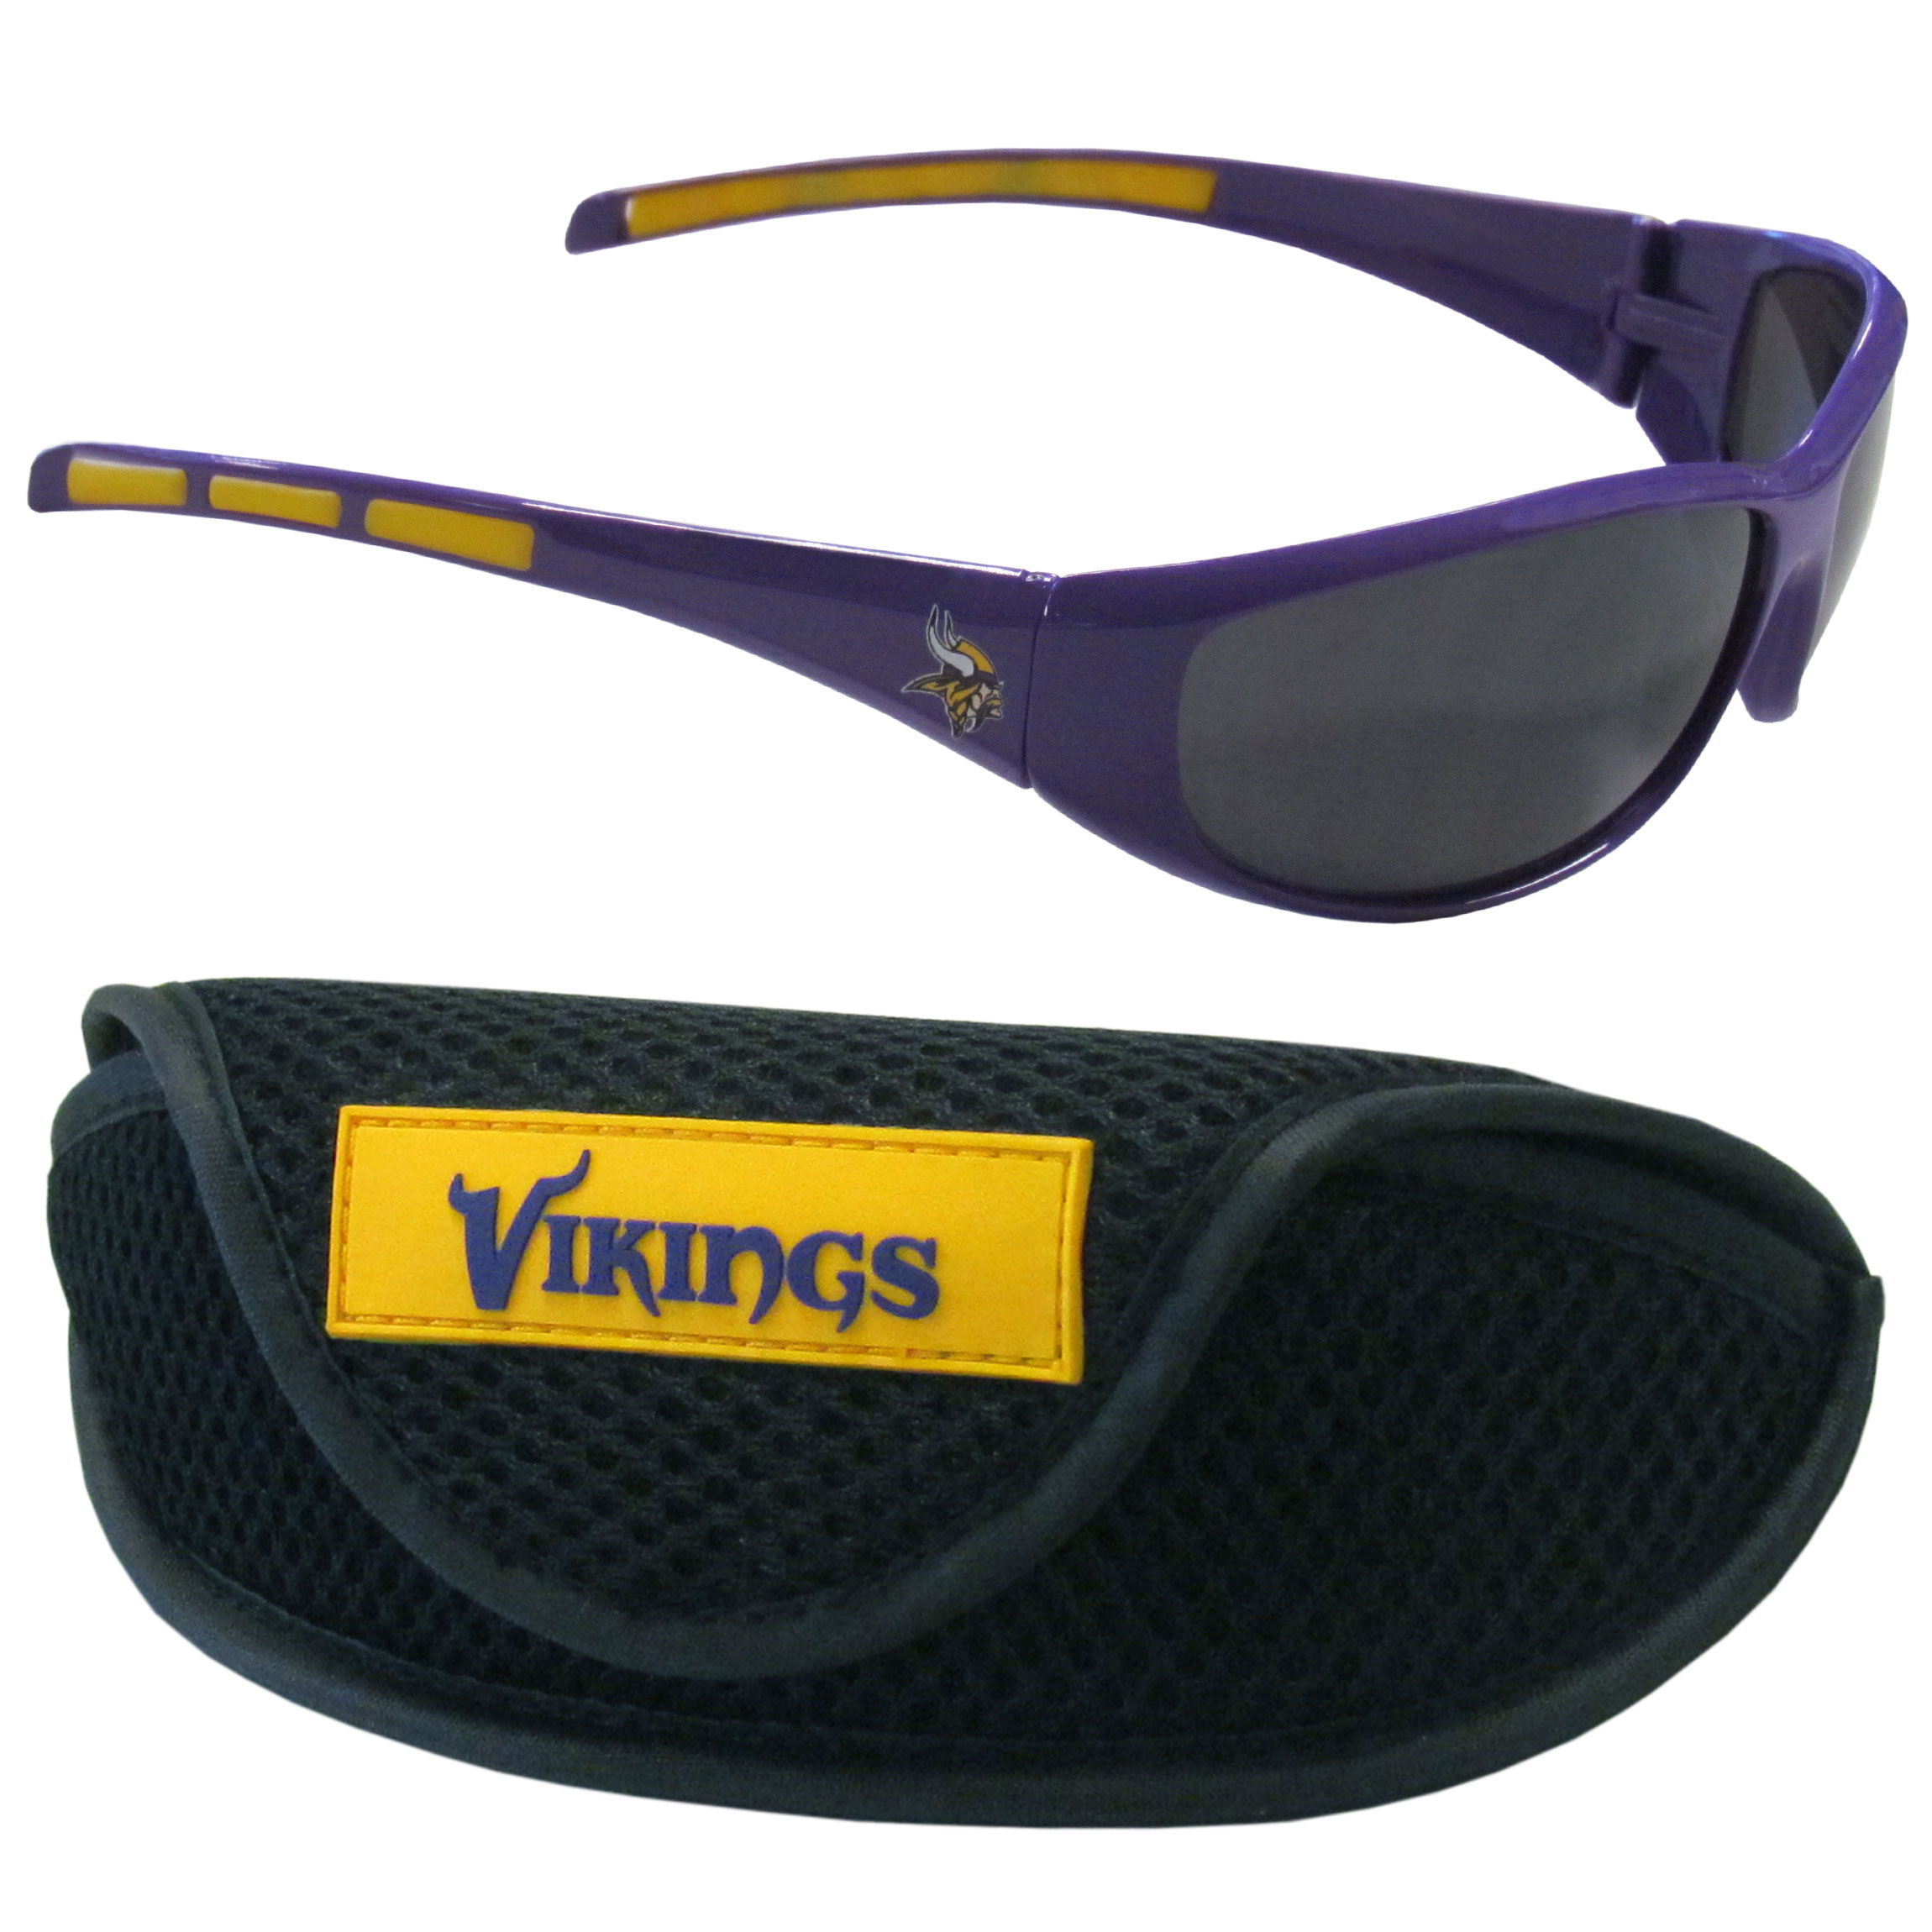 Minnesota Vikings Wrap Sunglass and Case Set - This great set includes a high quality pair of Minnesota Vikings wrap sunglasses and sport carrying case.